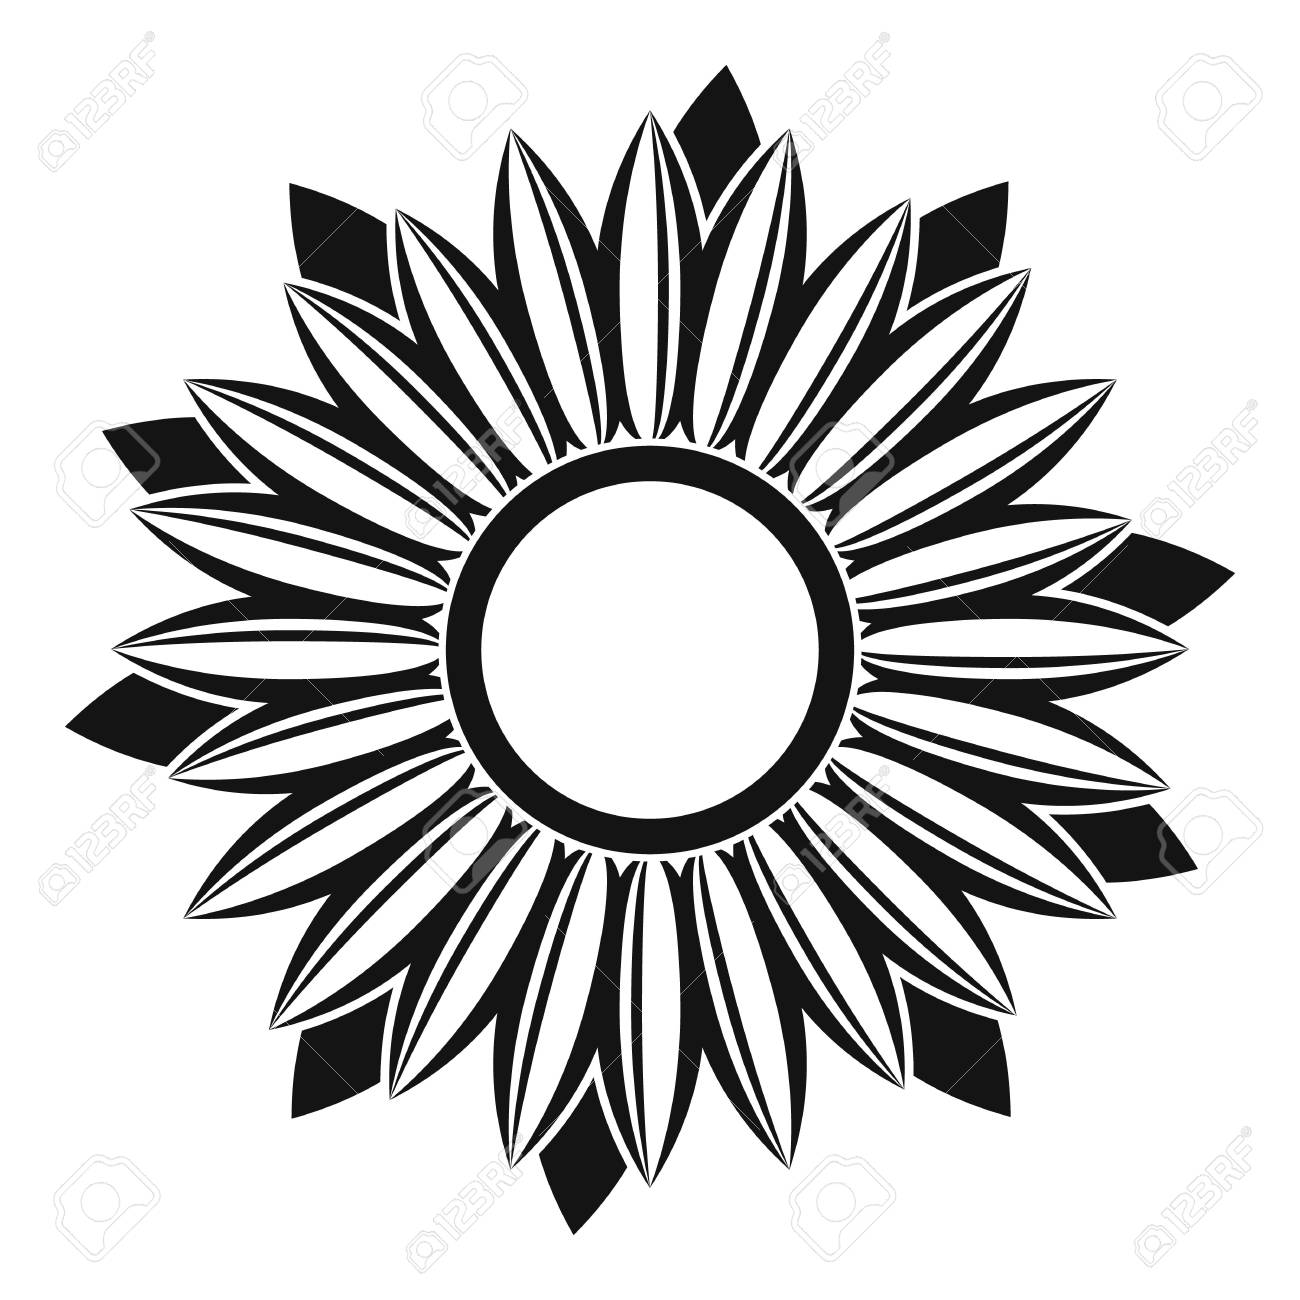 ripe sunflower icon simple illustration of ripe sunflower vector rh 123rf com sunflower vector free download sunflower vector art